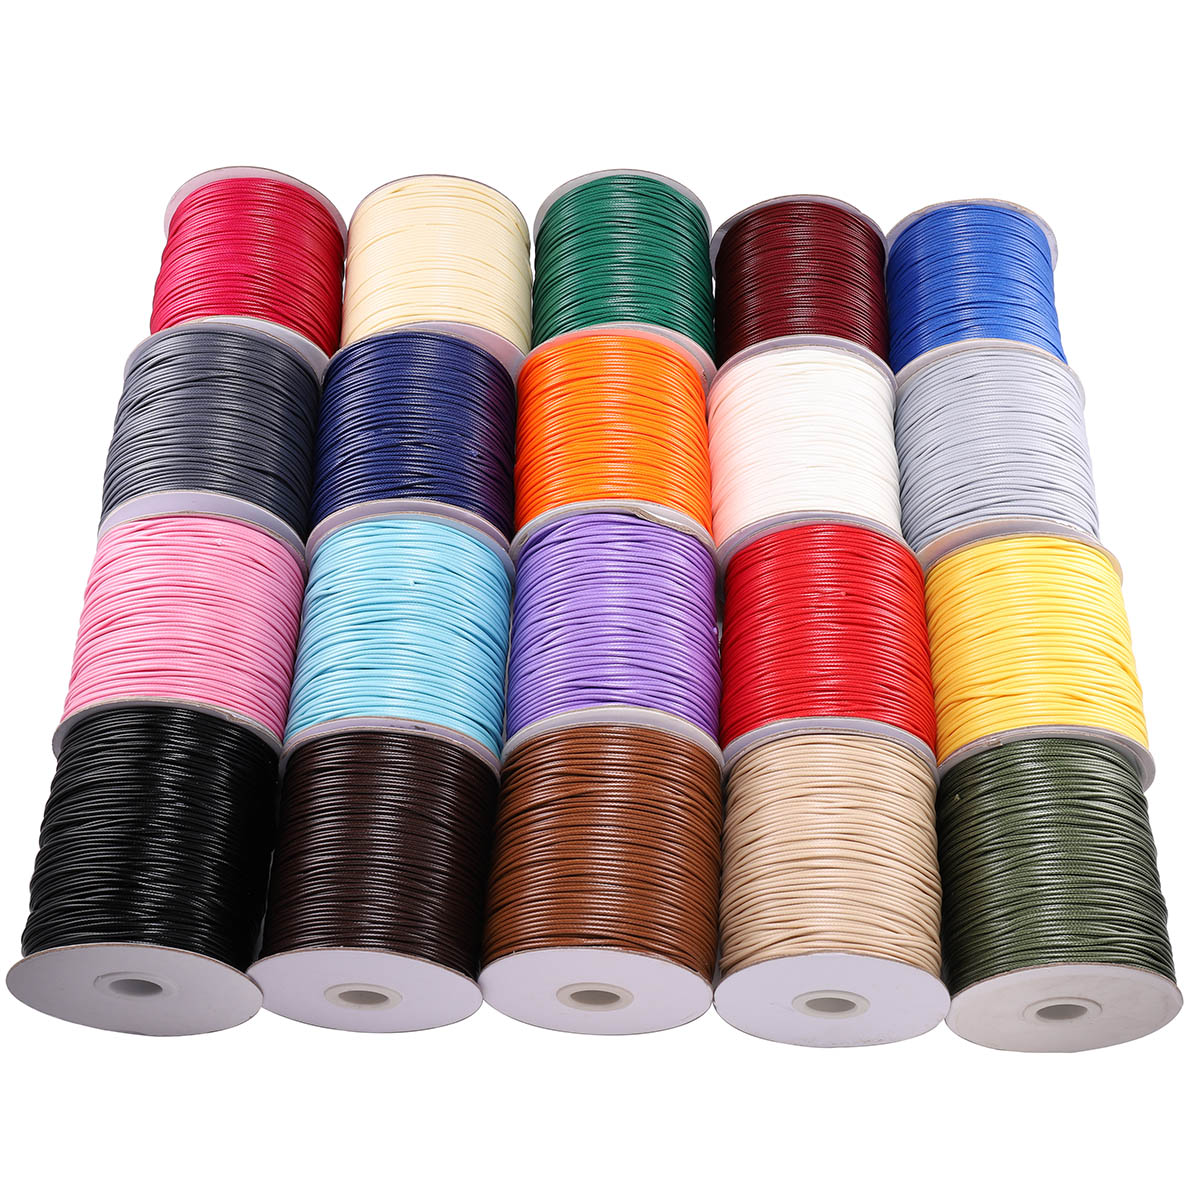 10m/lot 22 Color Leather Line Waxed Cord Cotton Thread String Strap Necklace Rope For Jewelry Making DIY Bracelet Supplies